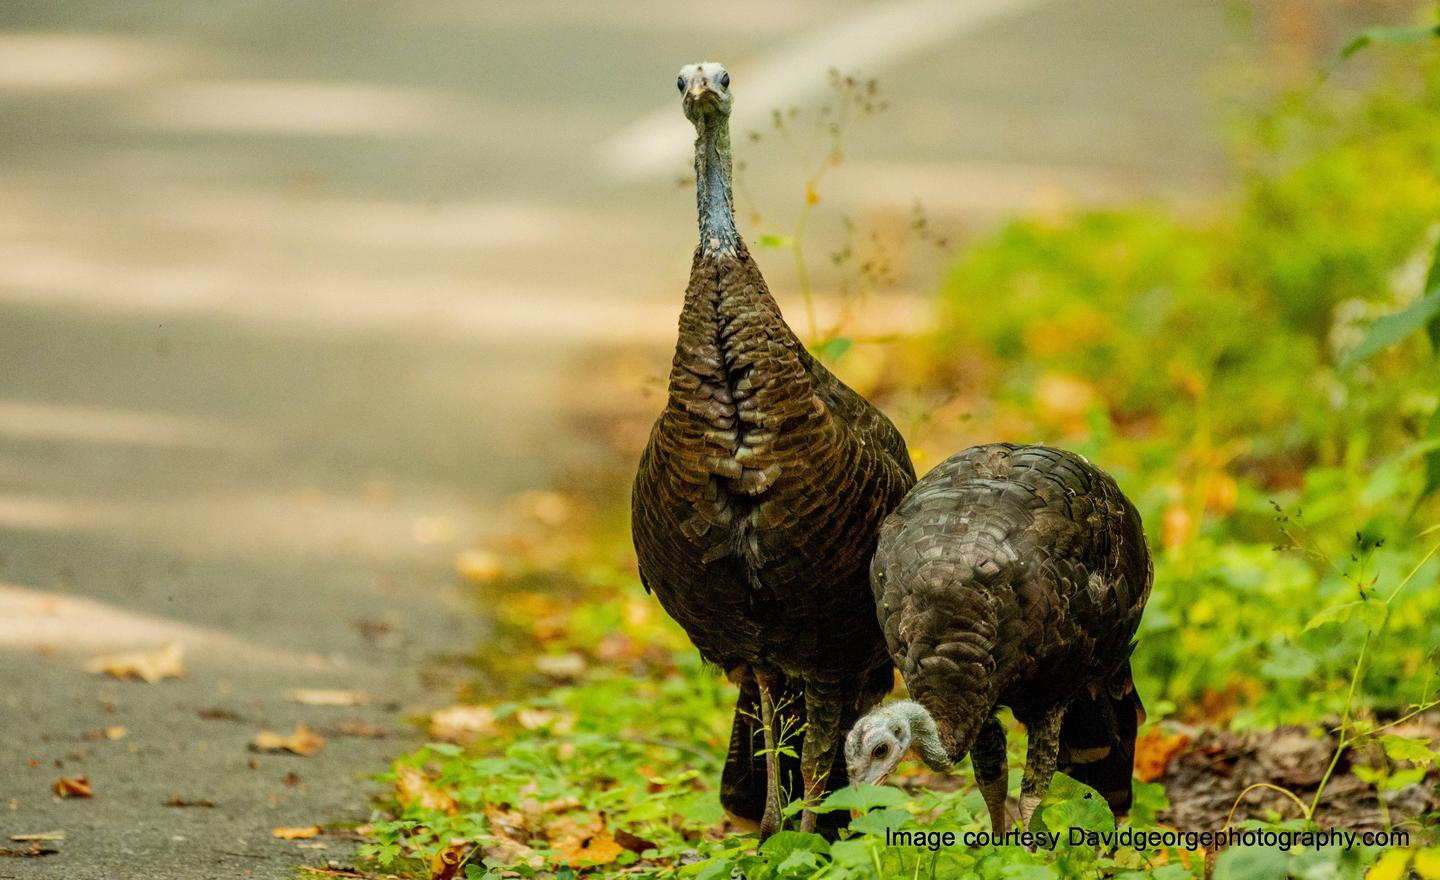 Turkey Jam!Drive slow! You often have to stop for turkey crossings. Don't be surprised if you're stuck in a turkey jam on Cosby Park Rd.